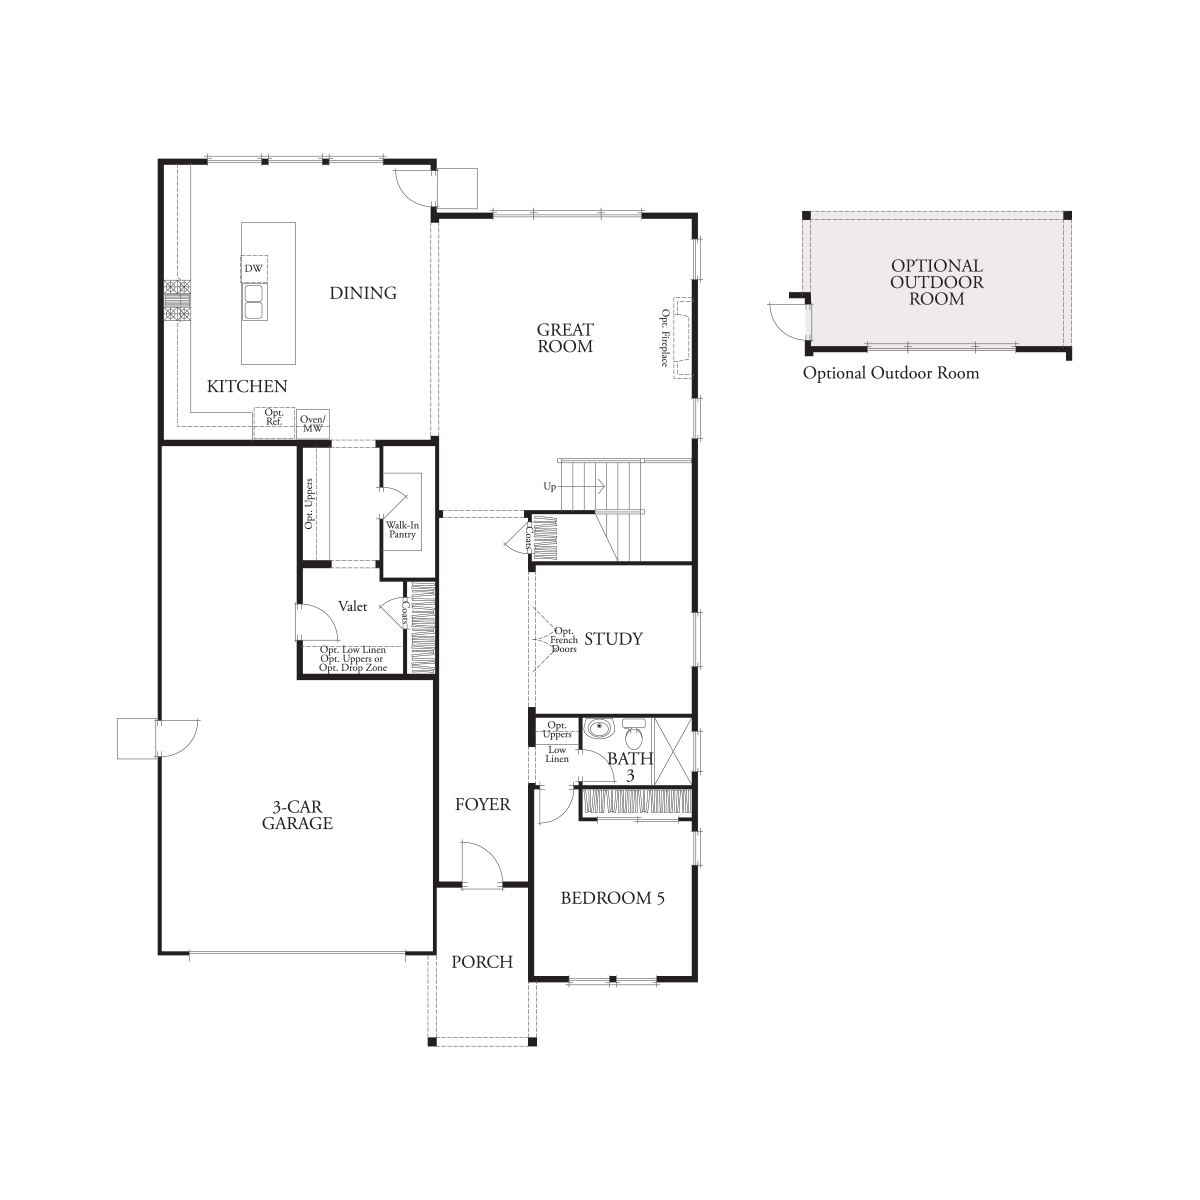 First floor residence 3 floor plan | Laurel at Emerson Ranch in Oakley, CA | Brookfield Residential